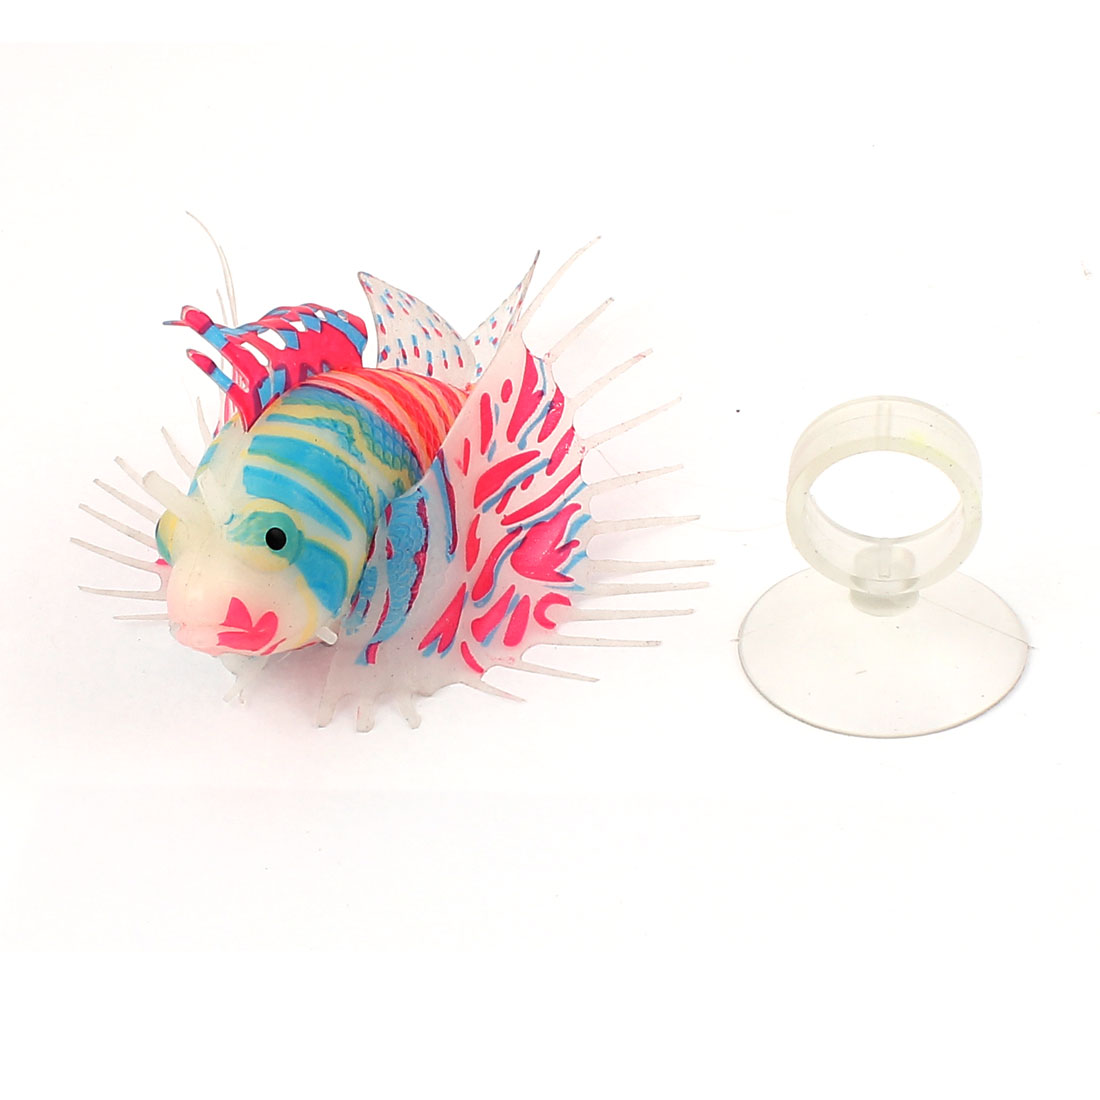 Aquarium Artificial Plastic Fish Ornament Decoration w Suction Cup